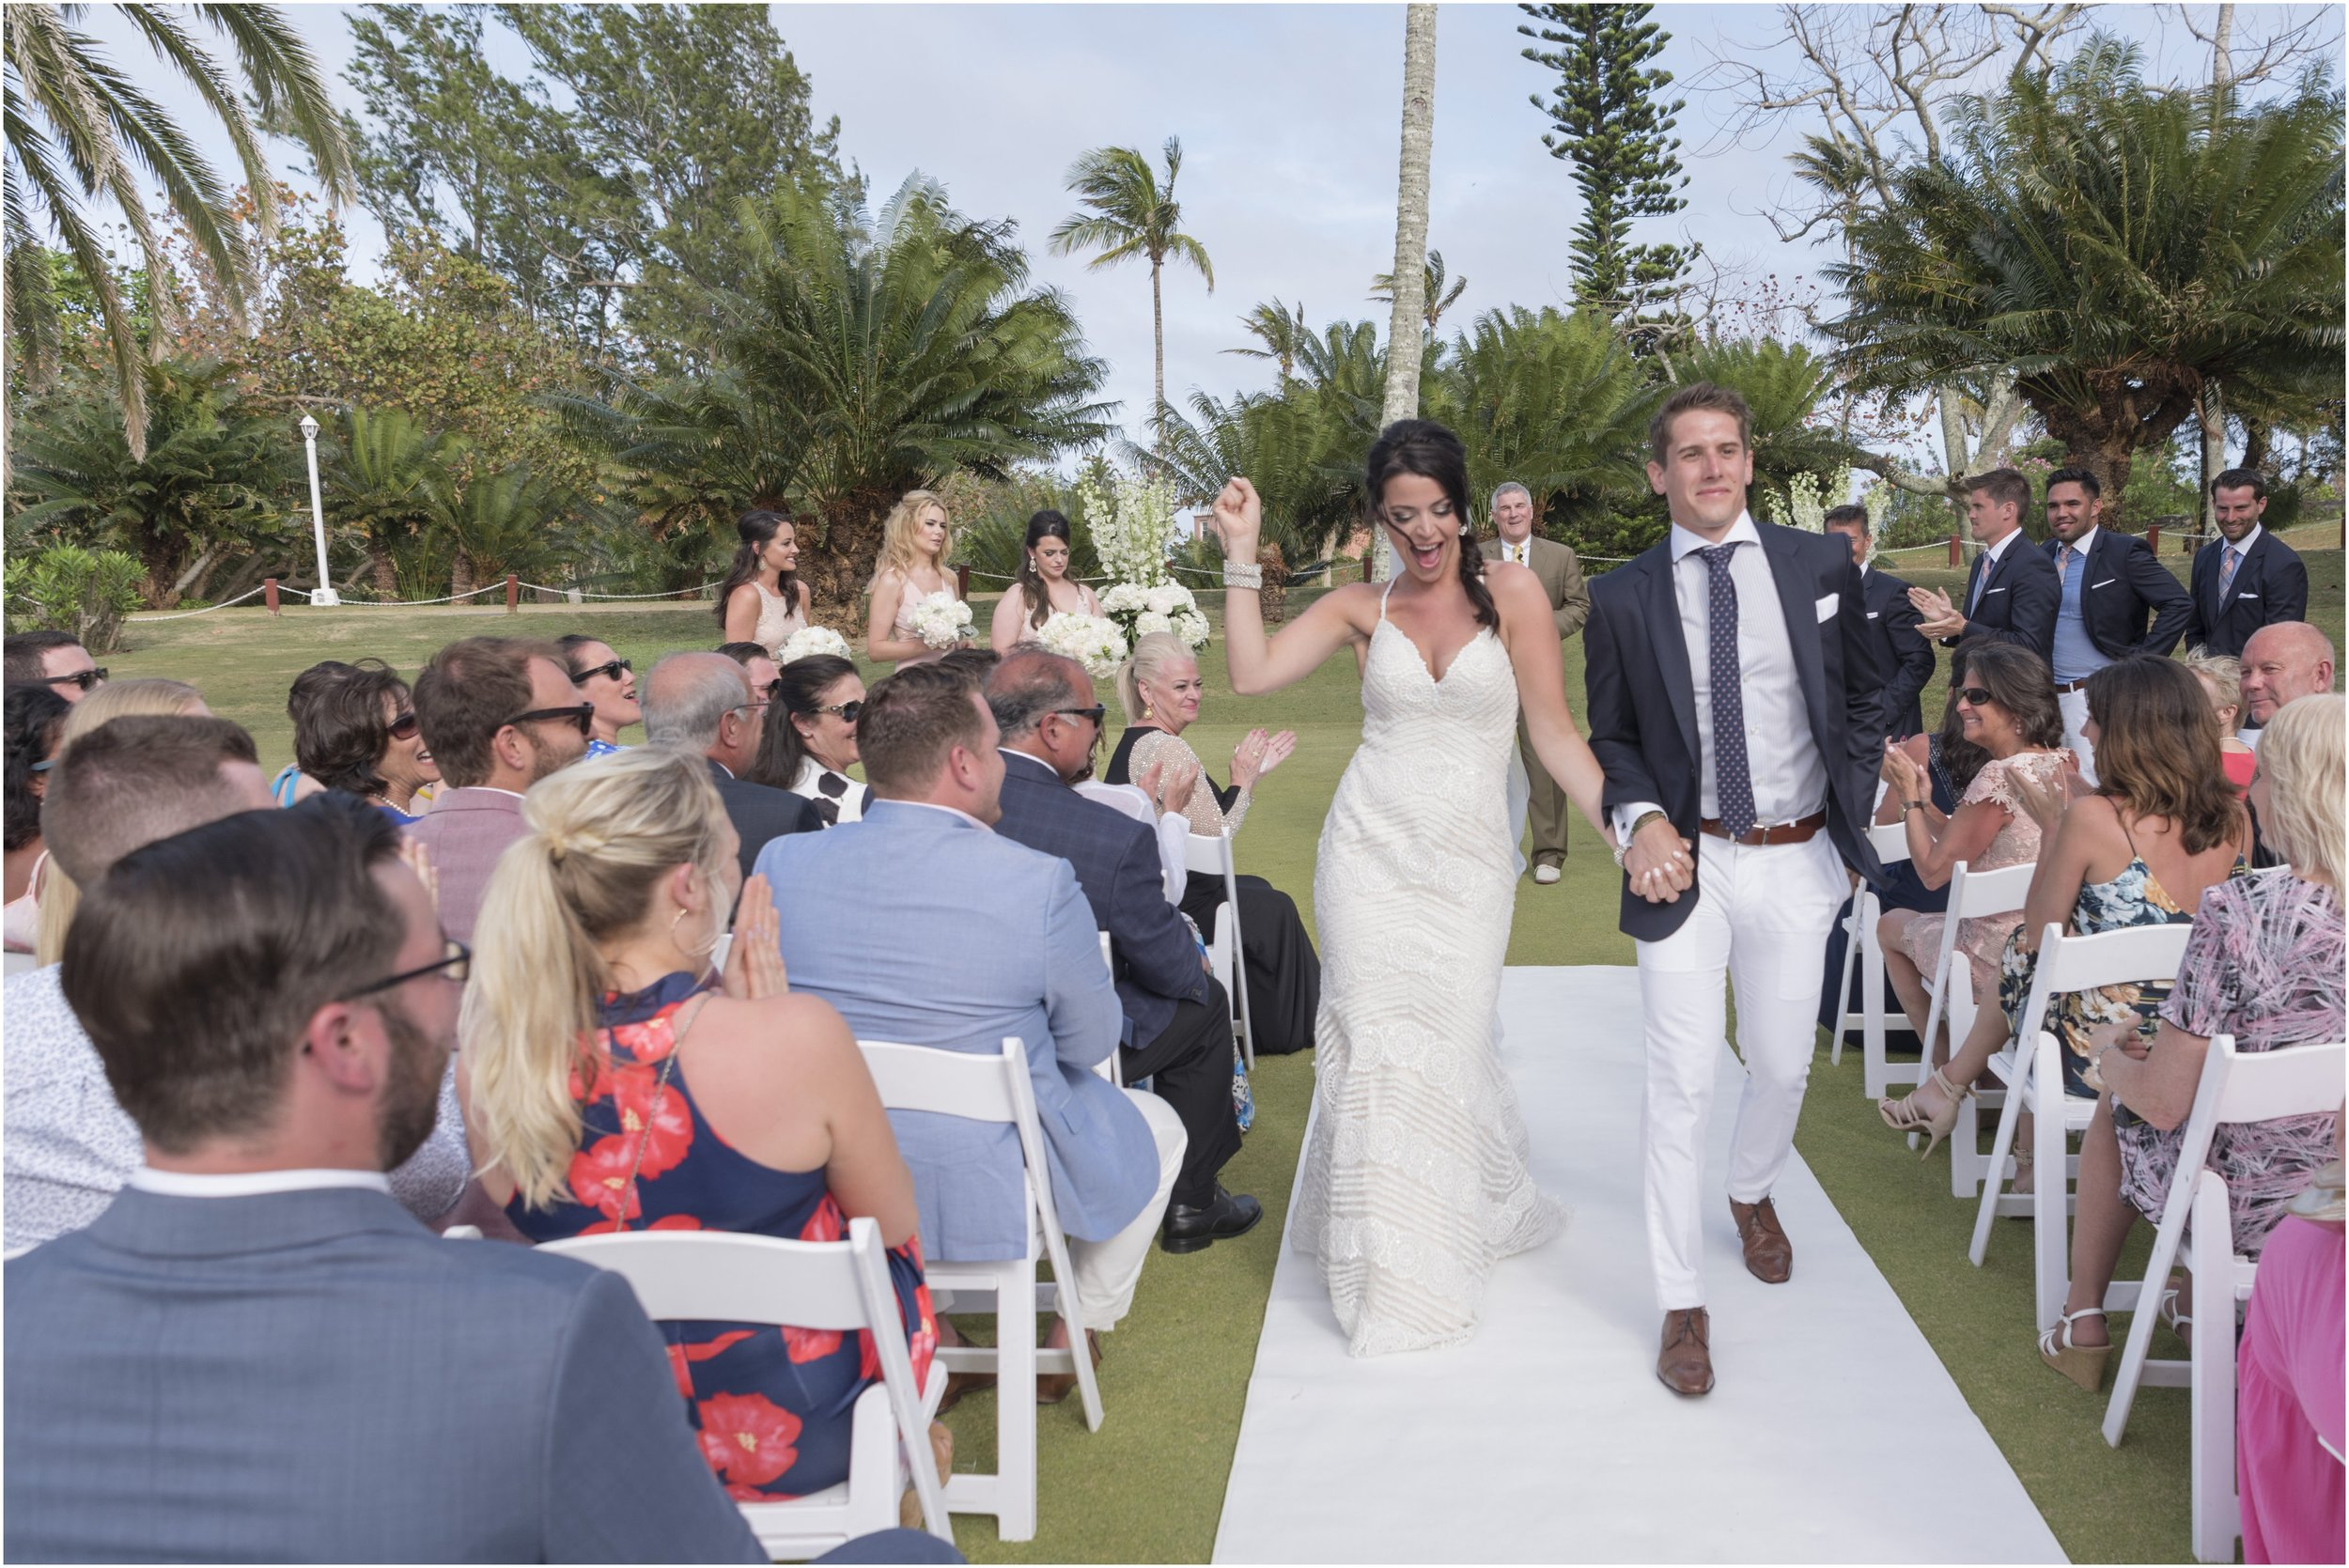 ©FianderFoto_Alyse_Stevie_Wedding_Bermuda_24.jpg